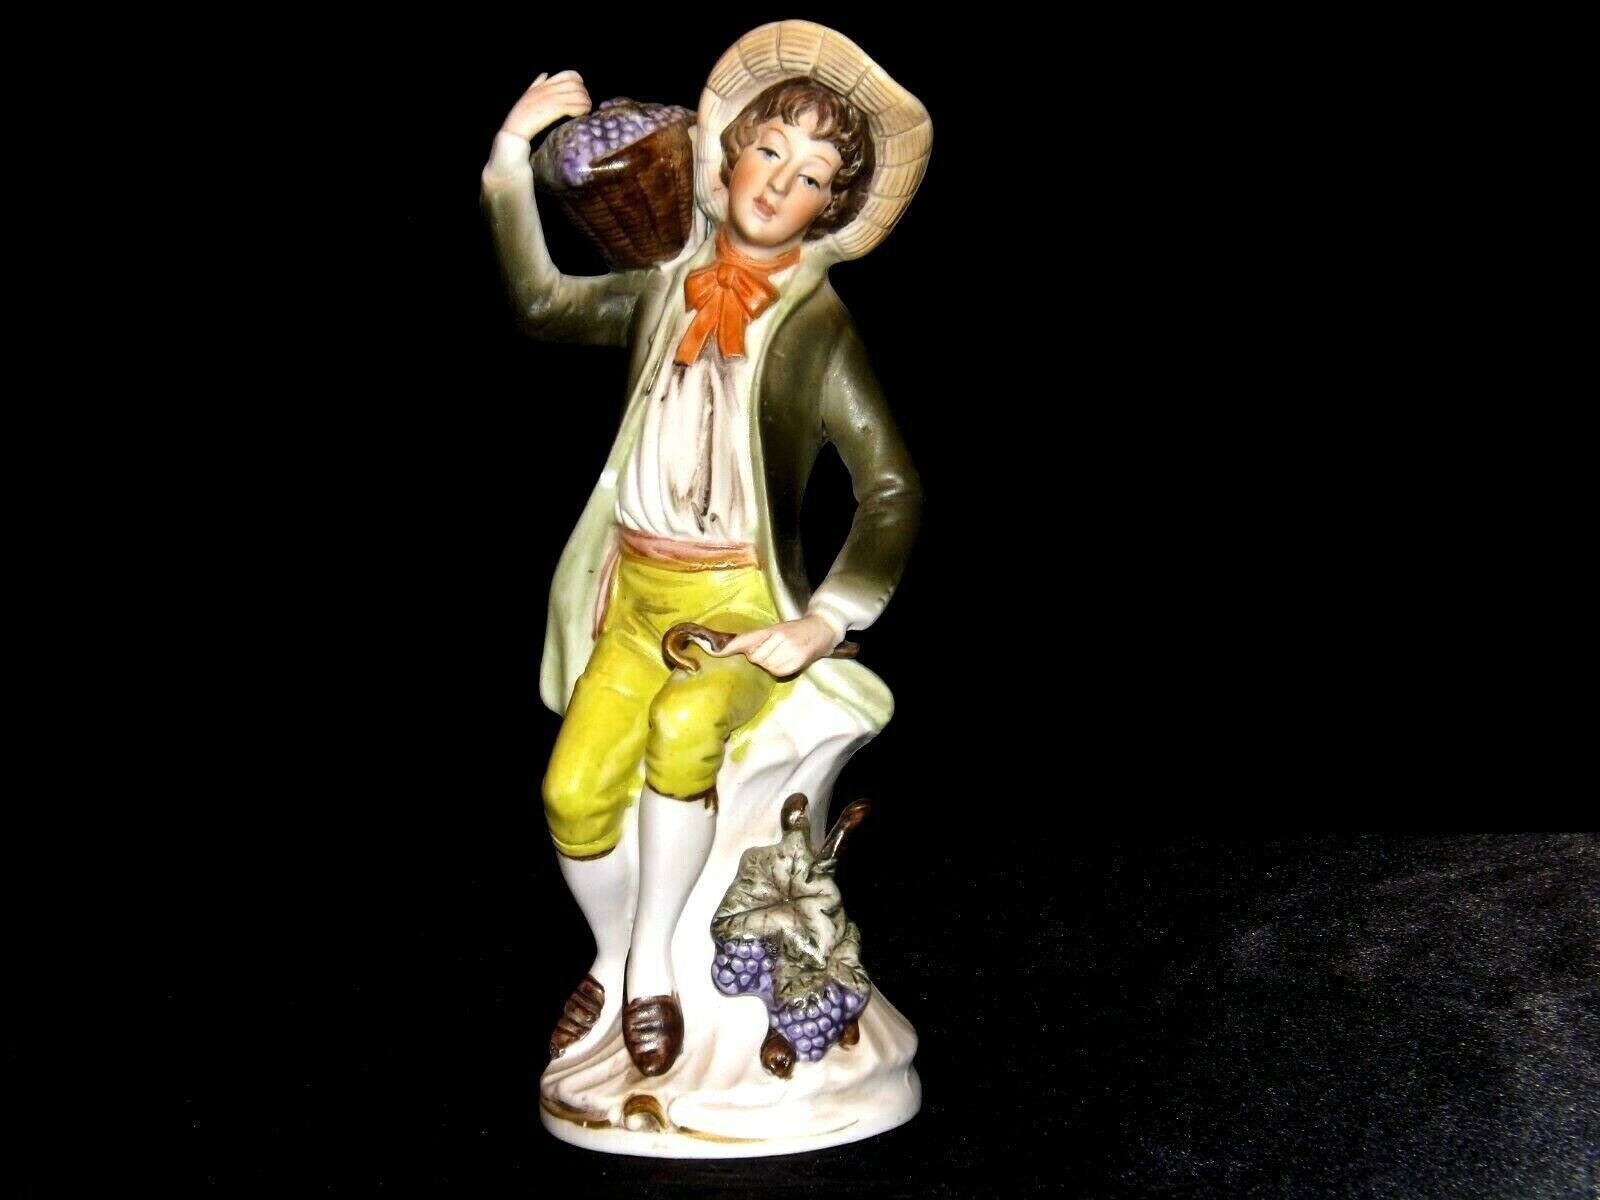 Figurine of a Young Man HOMCO 1258 AA19-1620 Vintage